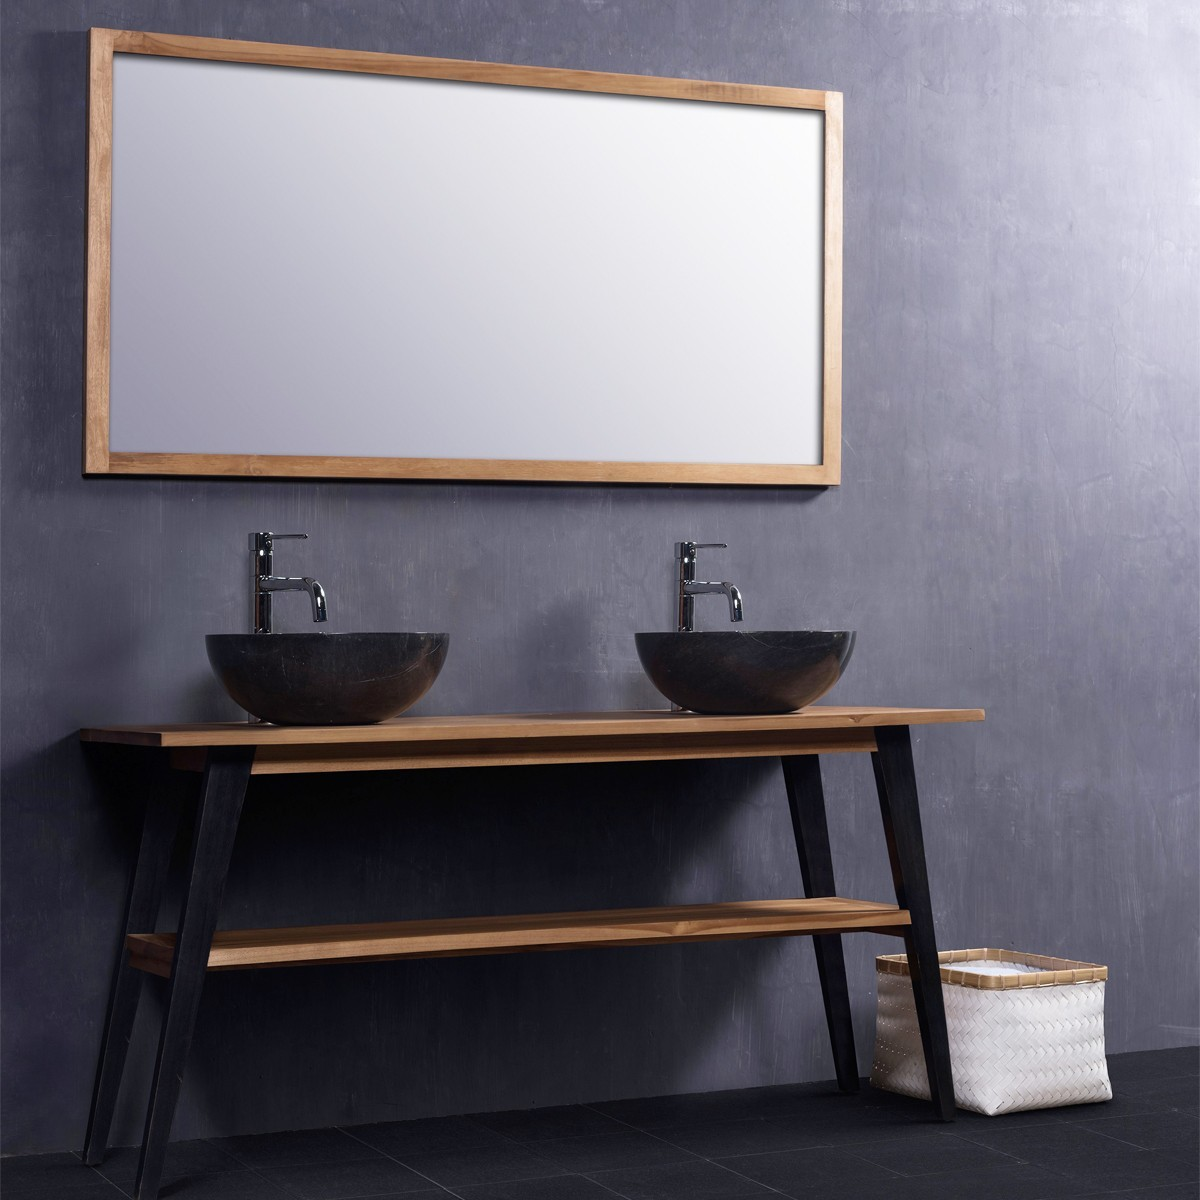 awesome miroir salle de bain bois gallery. Black Bedroom Furniture Sets. Home Design Ideas